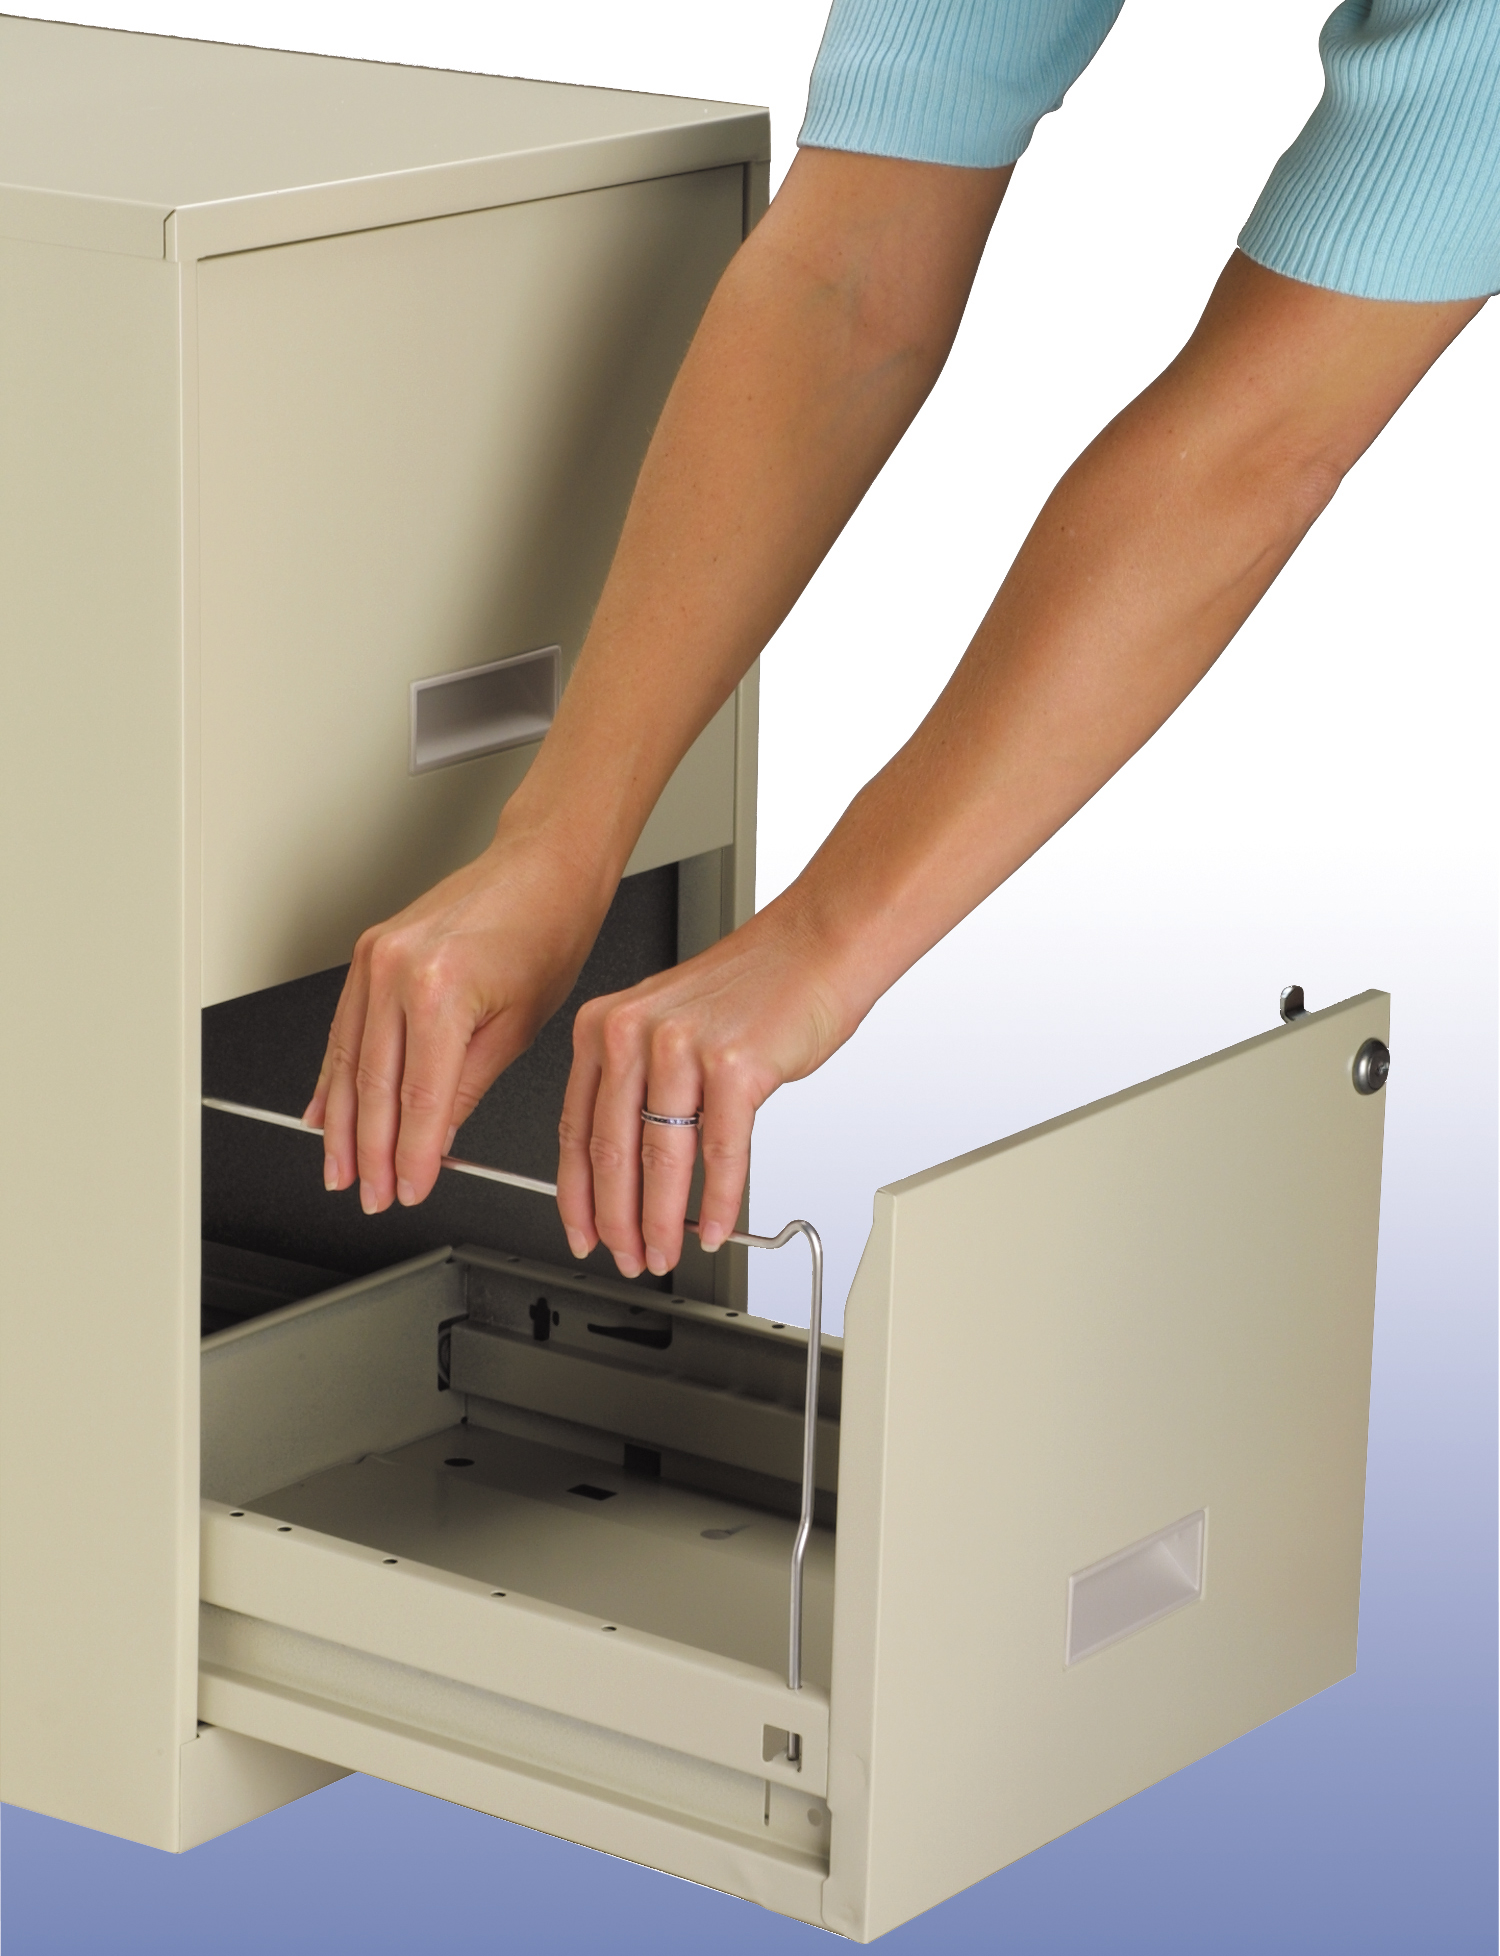 drop cabinets and document adir centers departments rack hanging file wall filing lift large organizers cabinet hangers stands storage